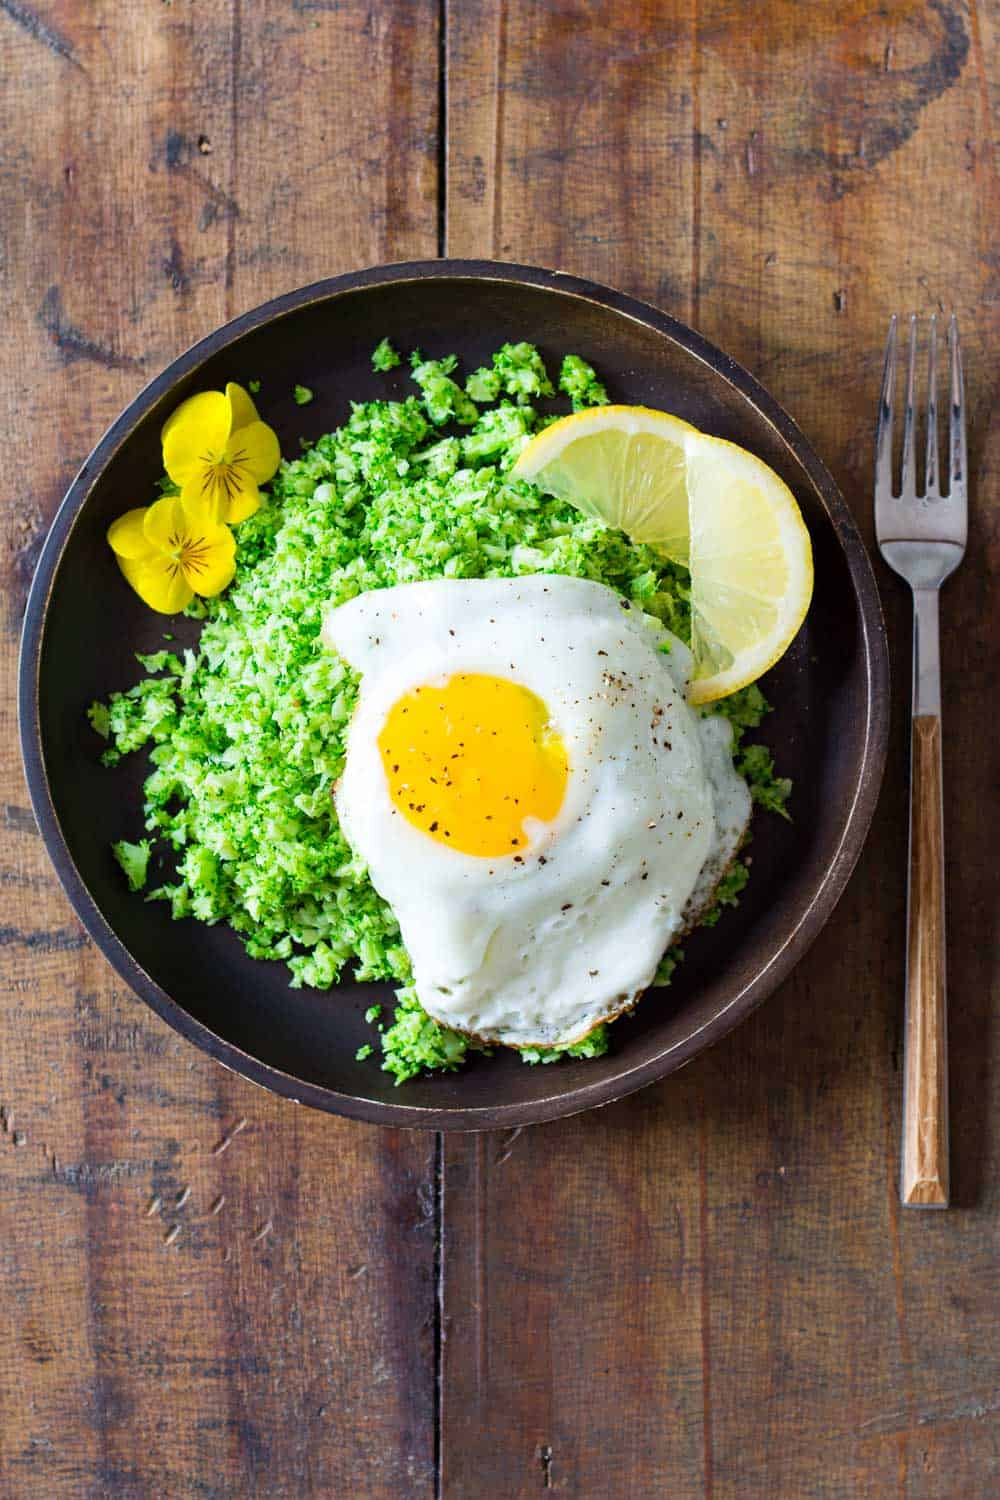 Broccoli rice served on a wooden plate, topped with a fried egg and lemon slices